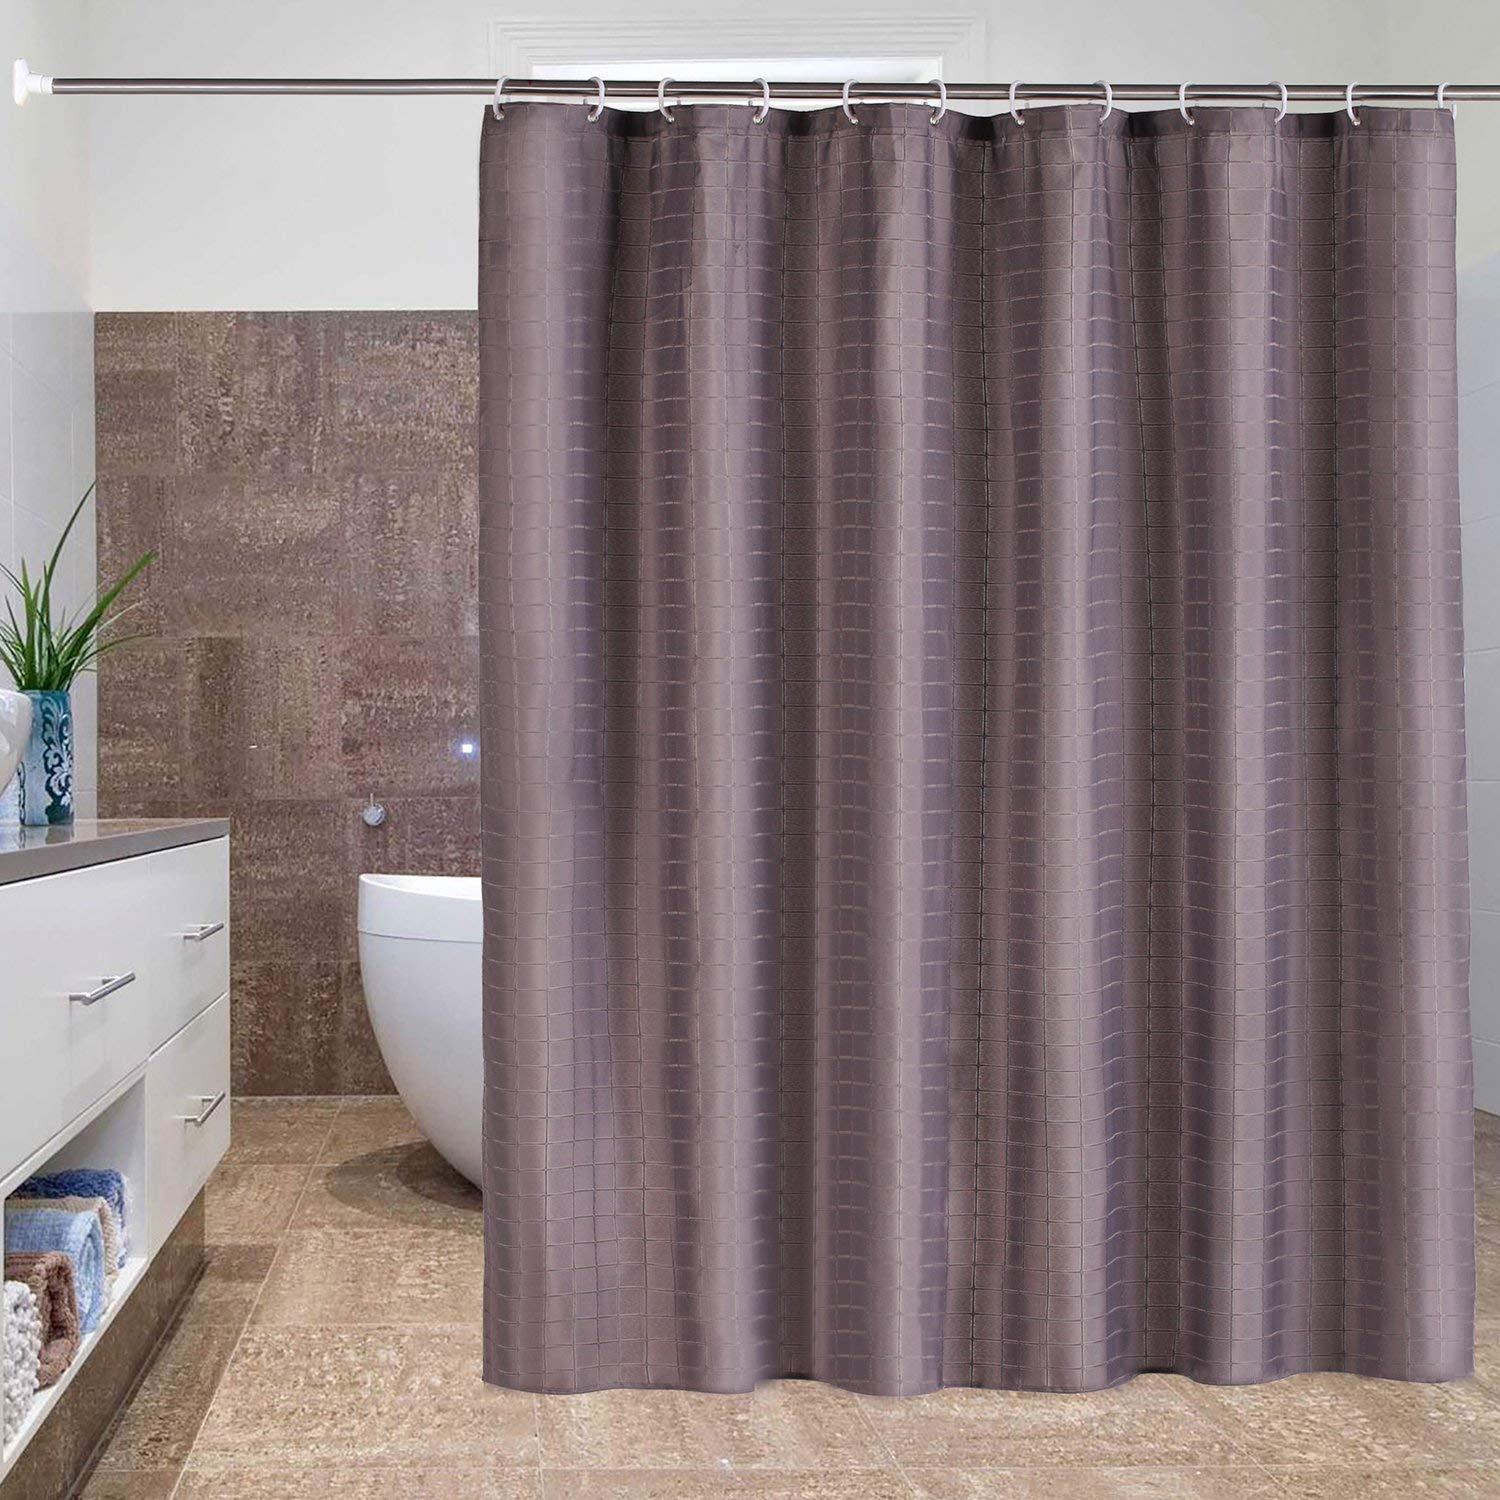 Get Quotations Fabric Shower Curtain Bathroom Cloth Mildewproof Waterproof And Washable Non Toxic